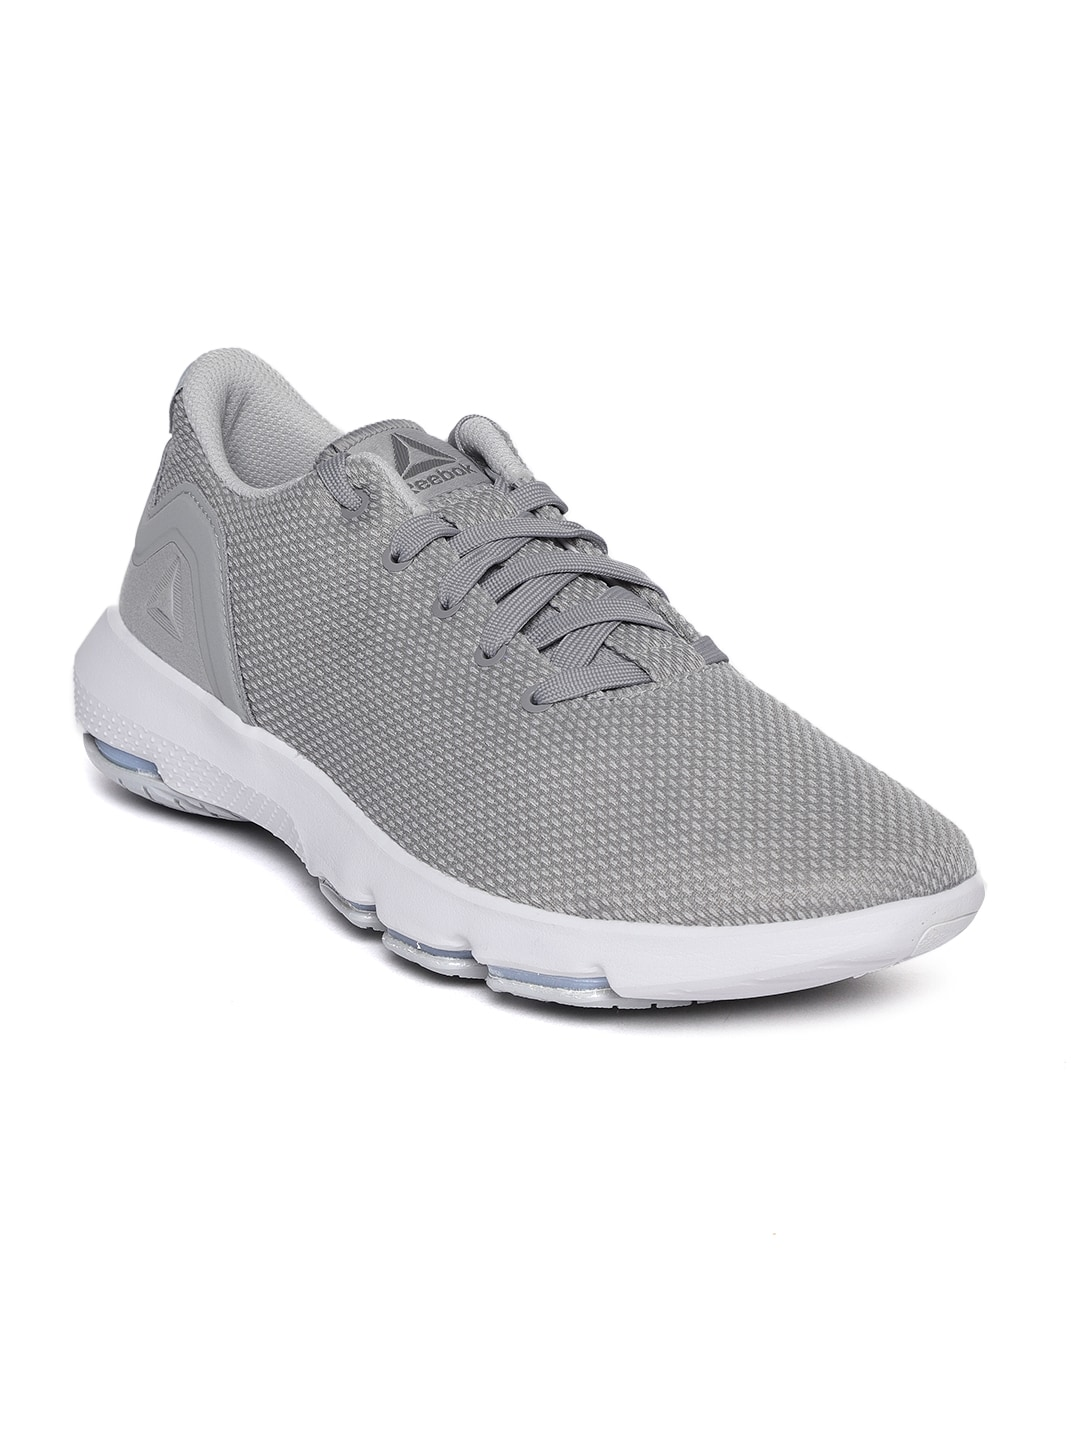 Reebok Grey Shoes - Buy Reebok Grey Shoes online in India 42aba3072